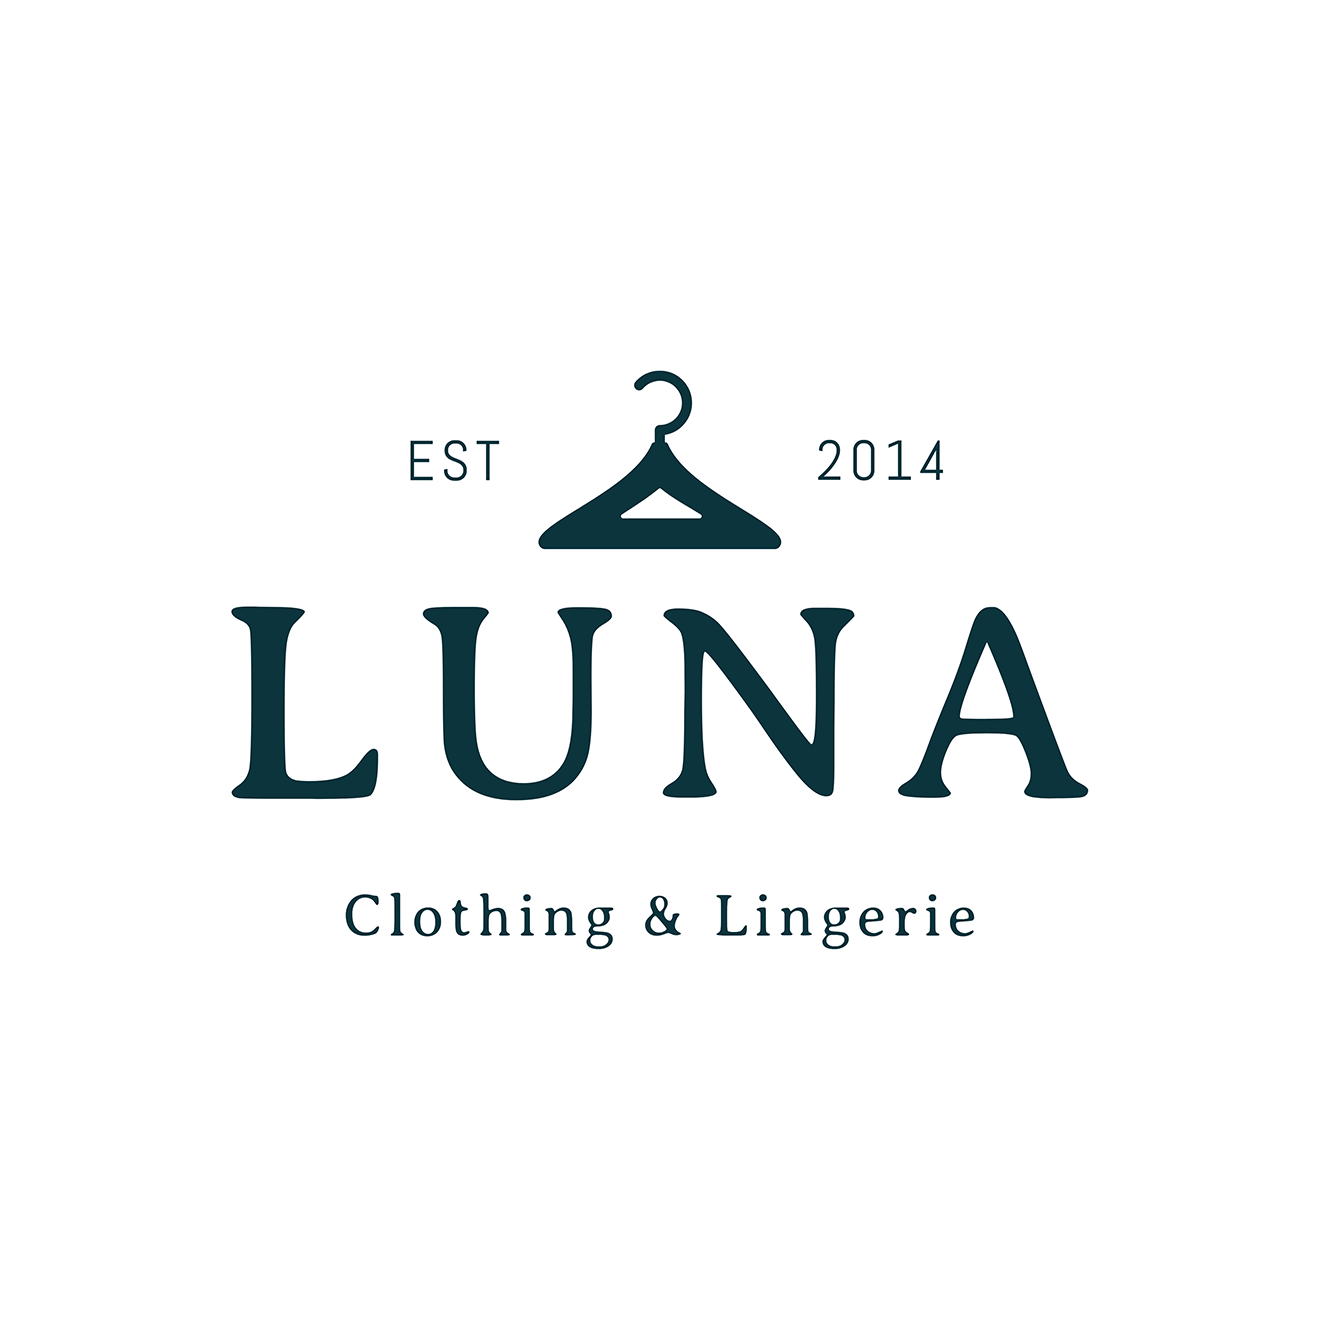 LUNA Clothing & Lingerie